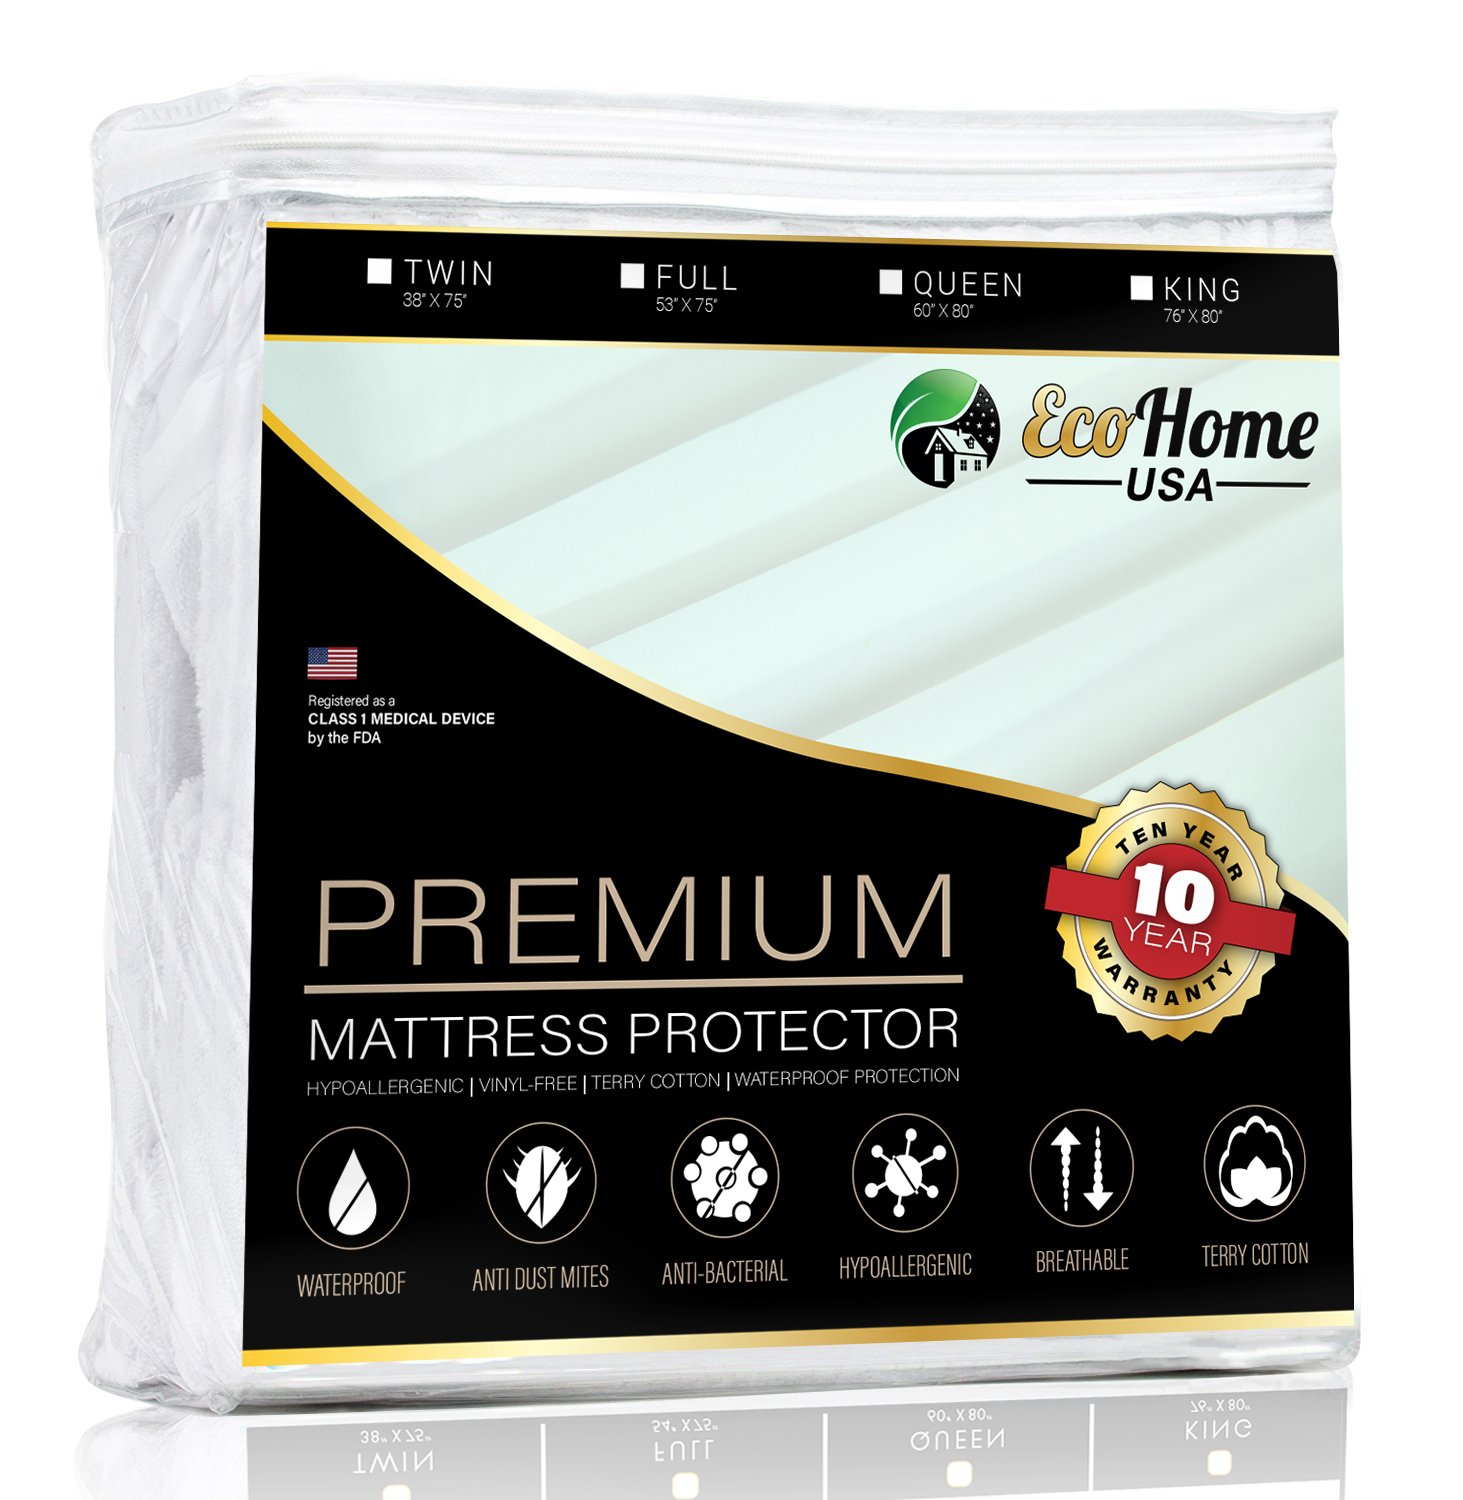 Eco Home USA Premium Mattress Pad Protector - Waterproof & Hypoallergenic Cover - Vinyl Free, Terry Cotton Topper (King)